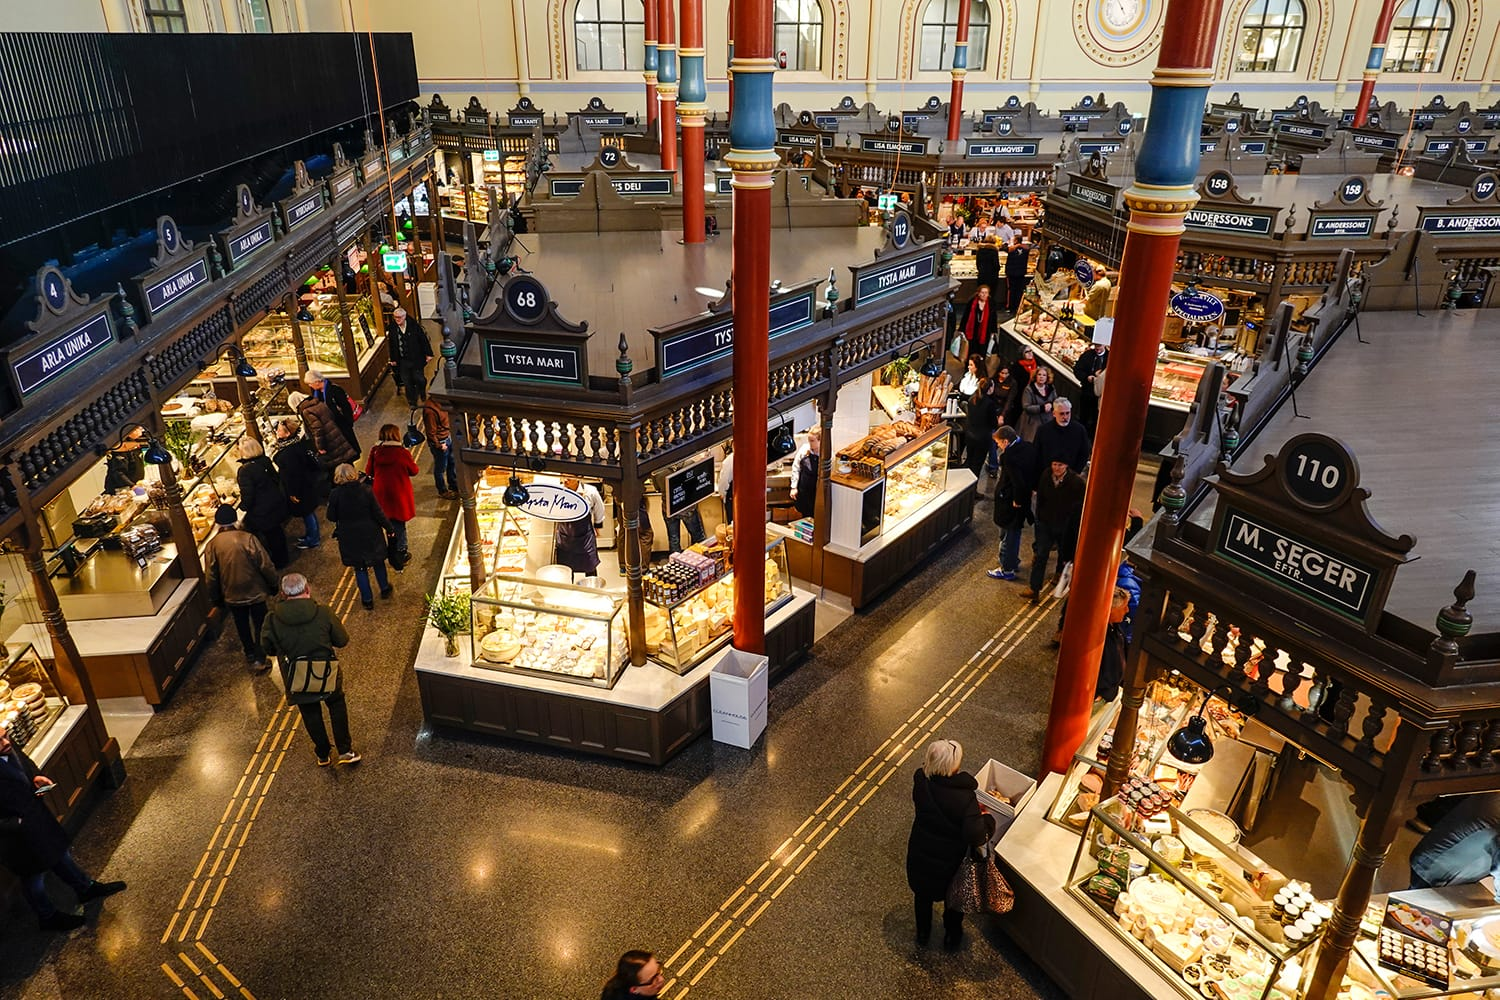 The interior of the newly renovated Östermalm Saluhall food market in Stockholm, Sweden